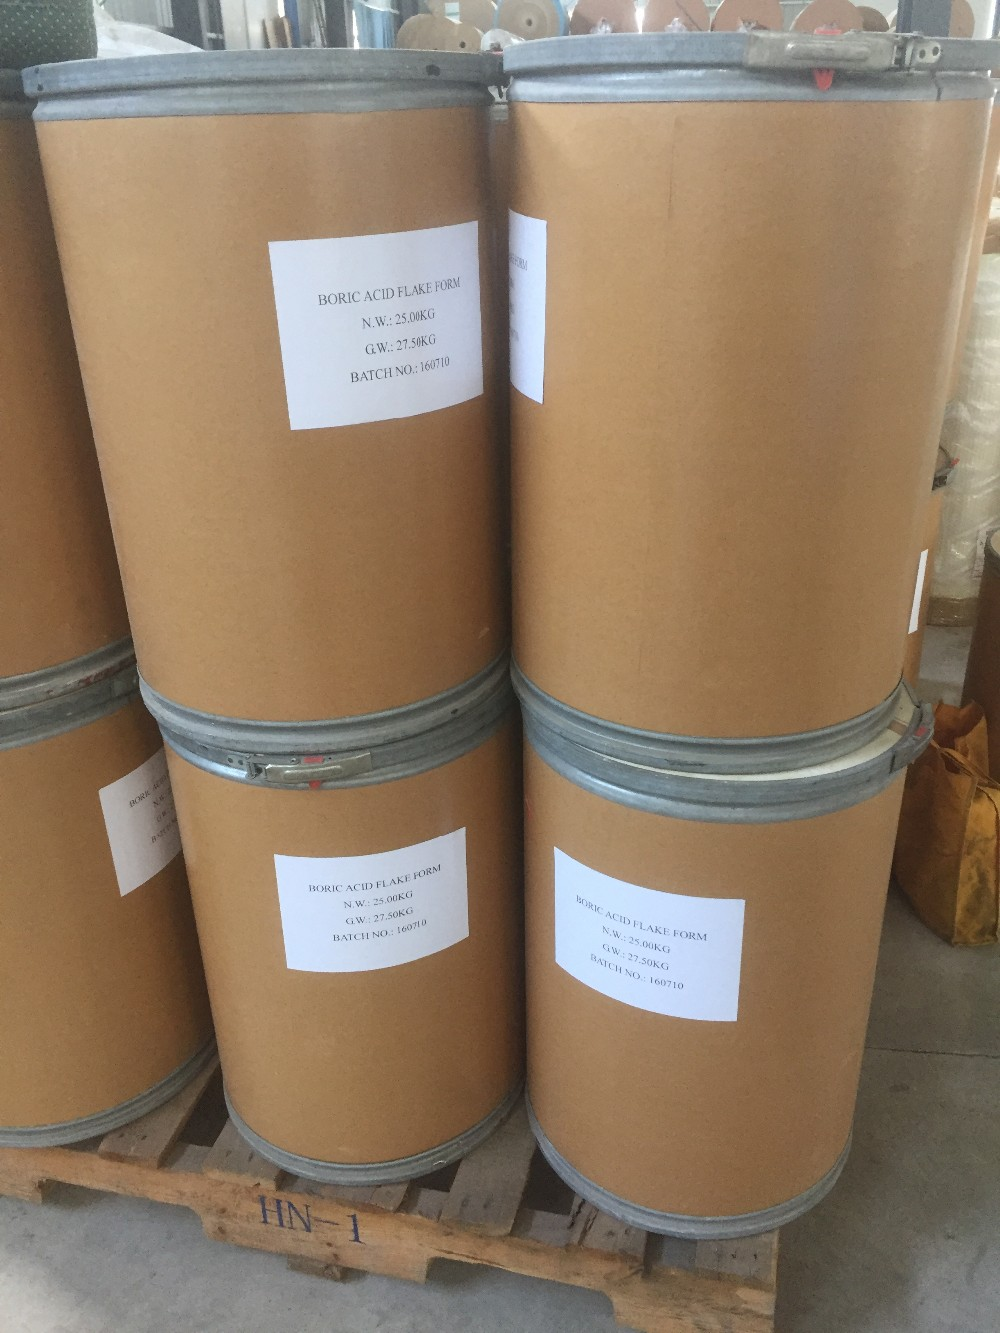 High quality boric acid flakes with good price, Bulk Form